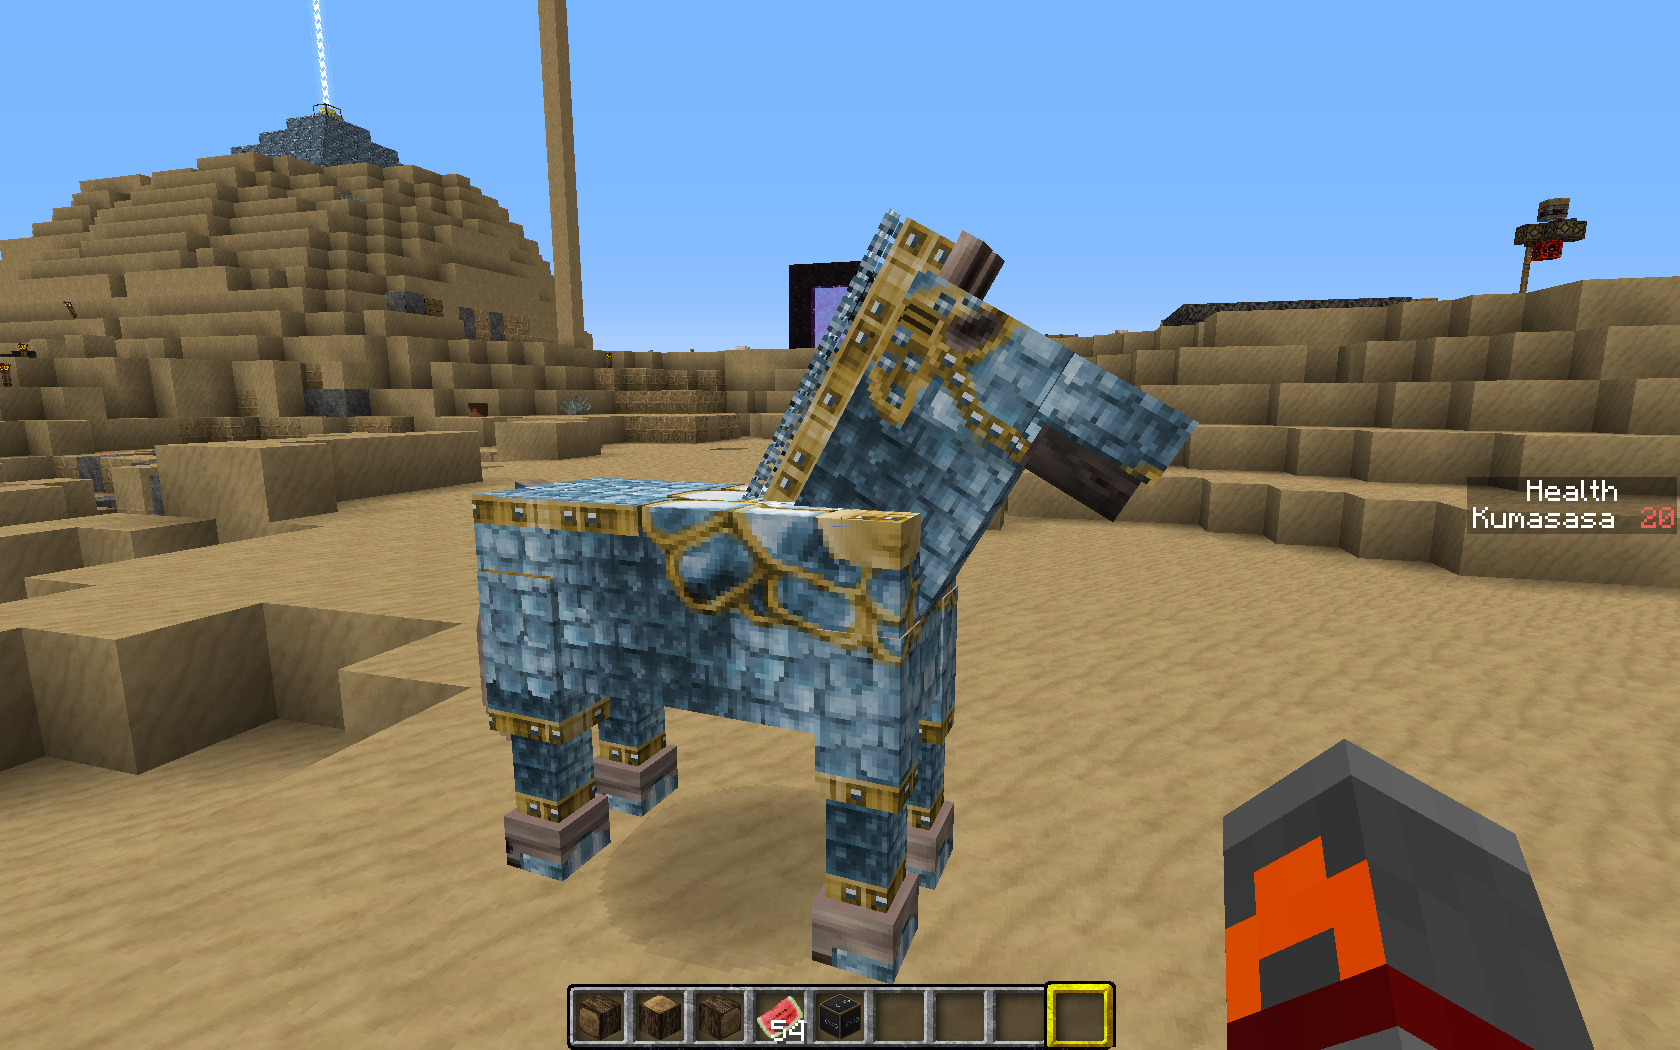 Mc 25995 Horse Armor Texture Not Rendering Completely On Right Side